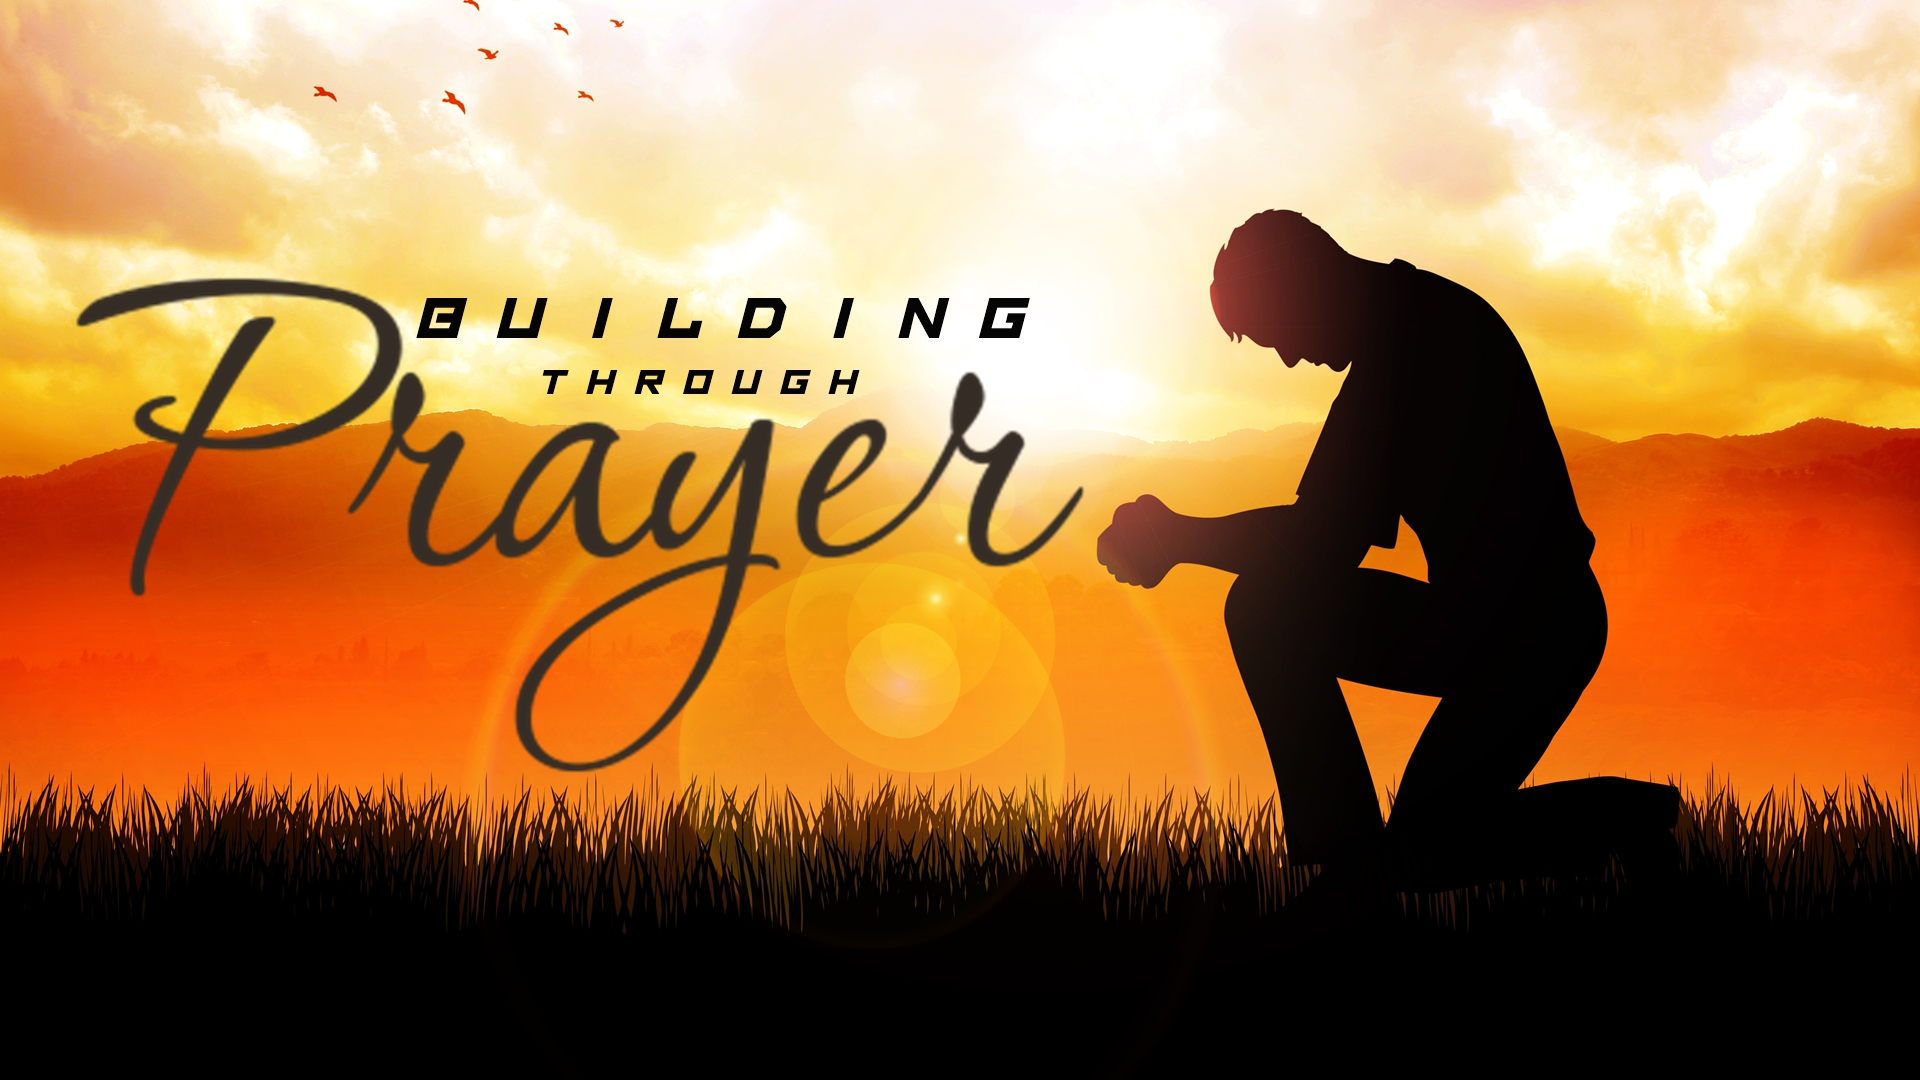 BUILDING THROUGH PRAYER